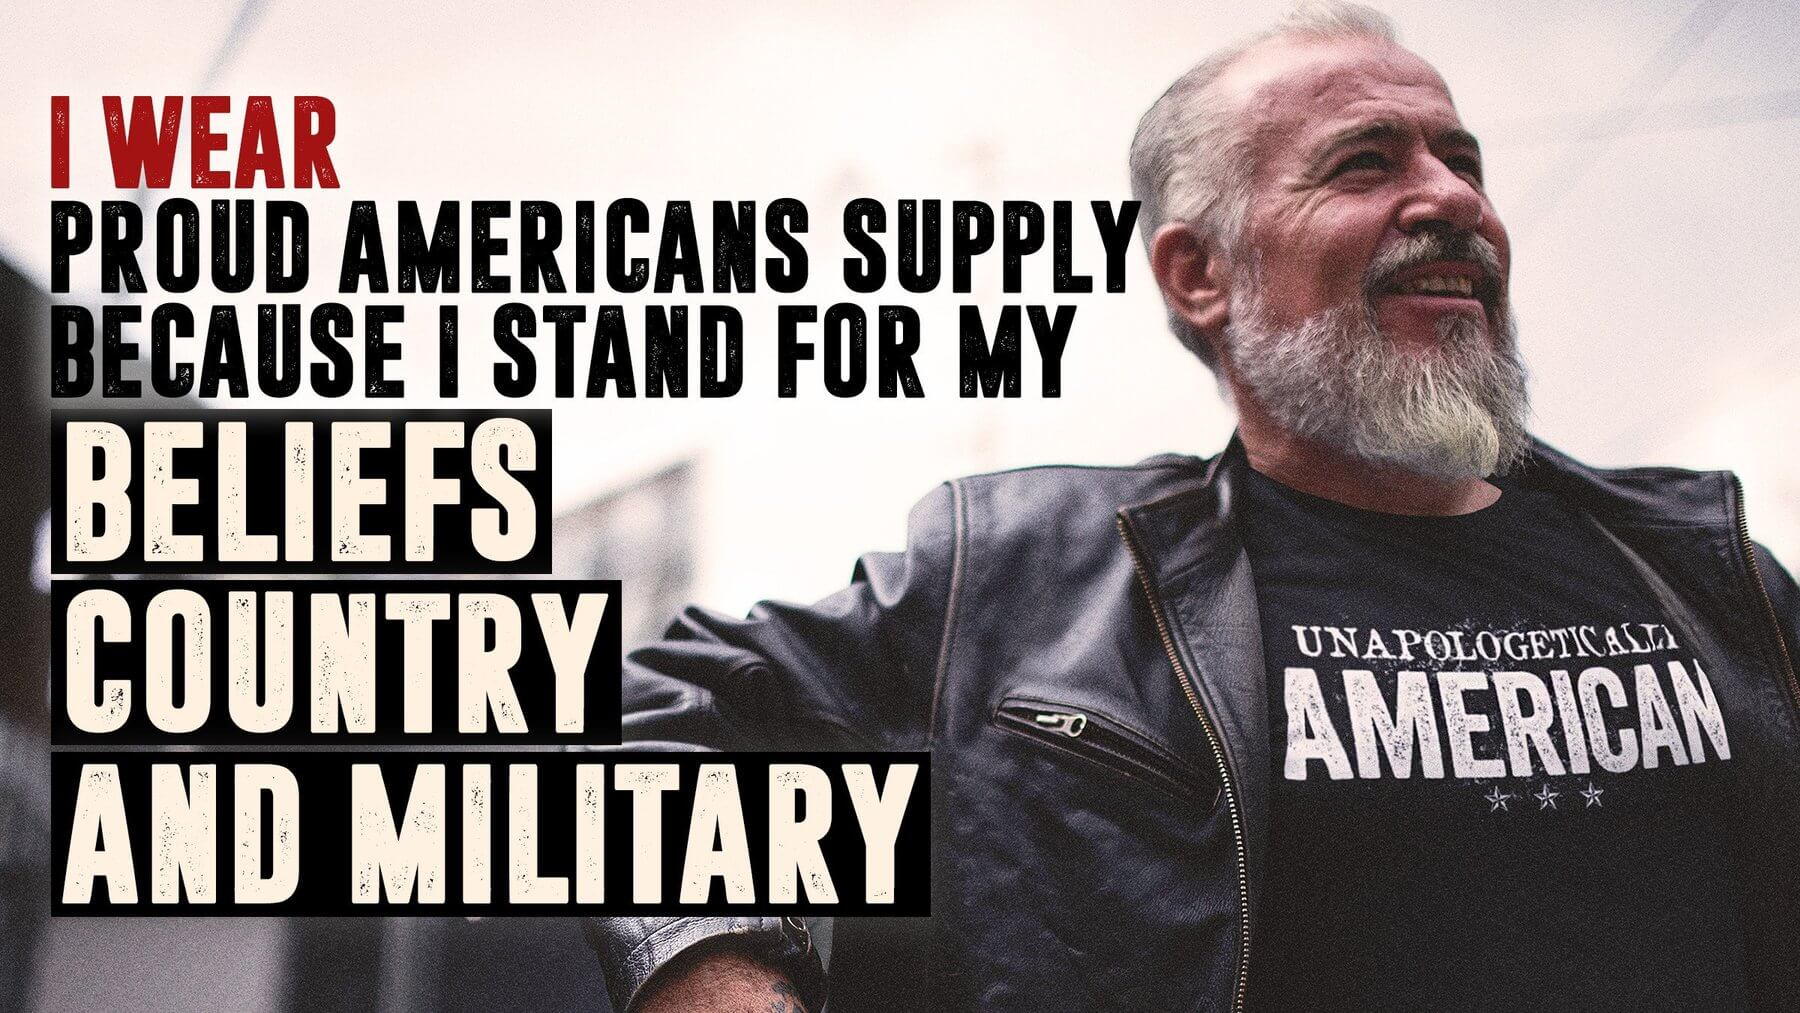 i wear proud american supply